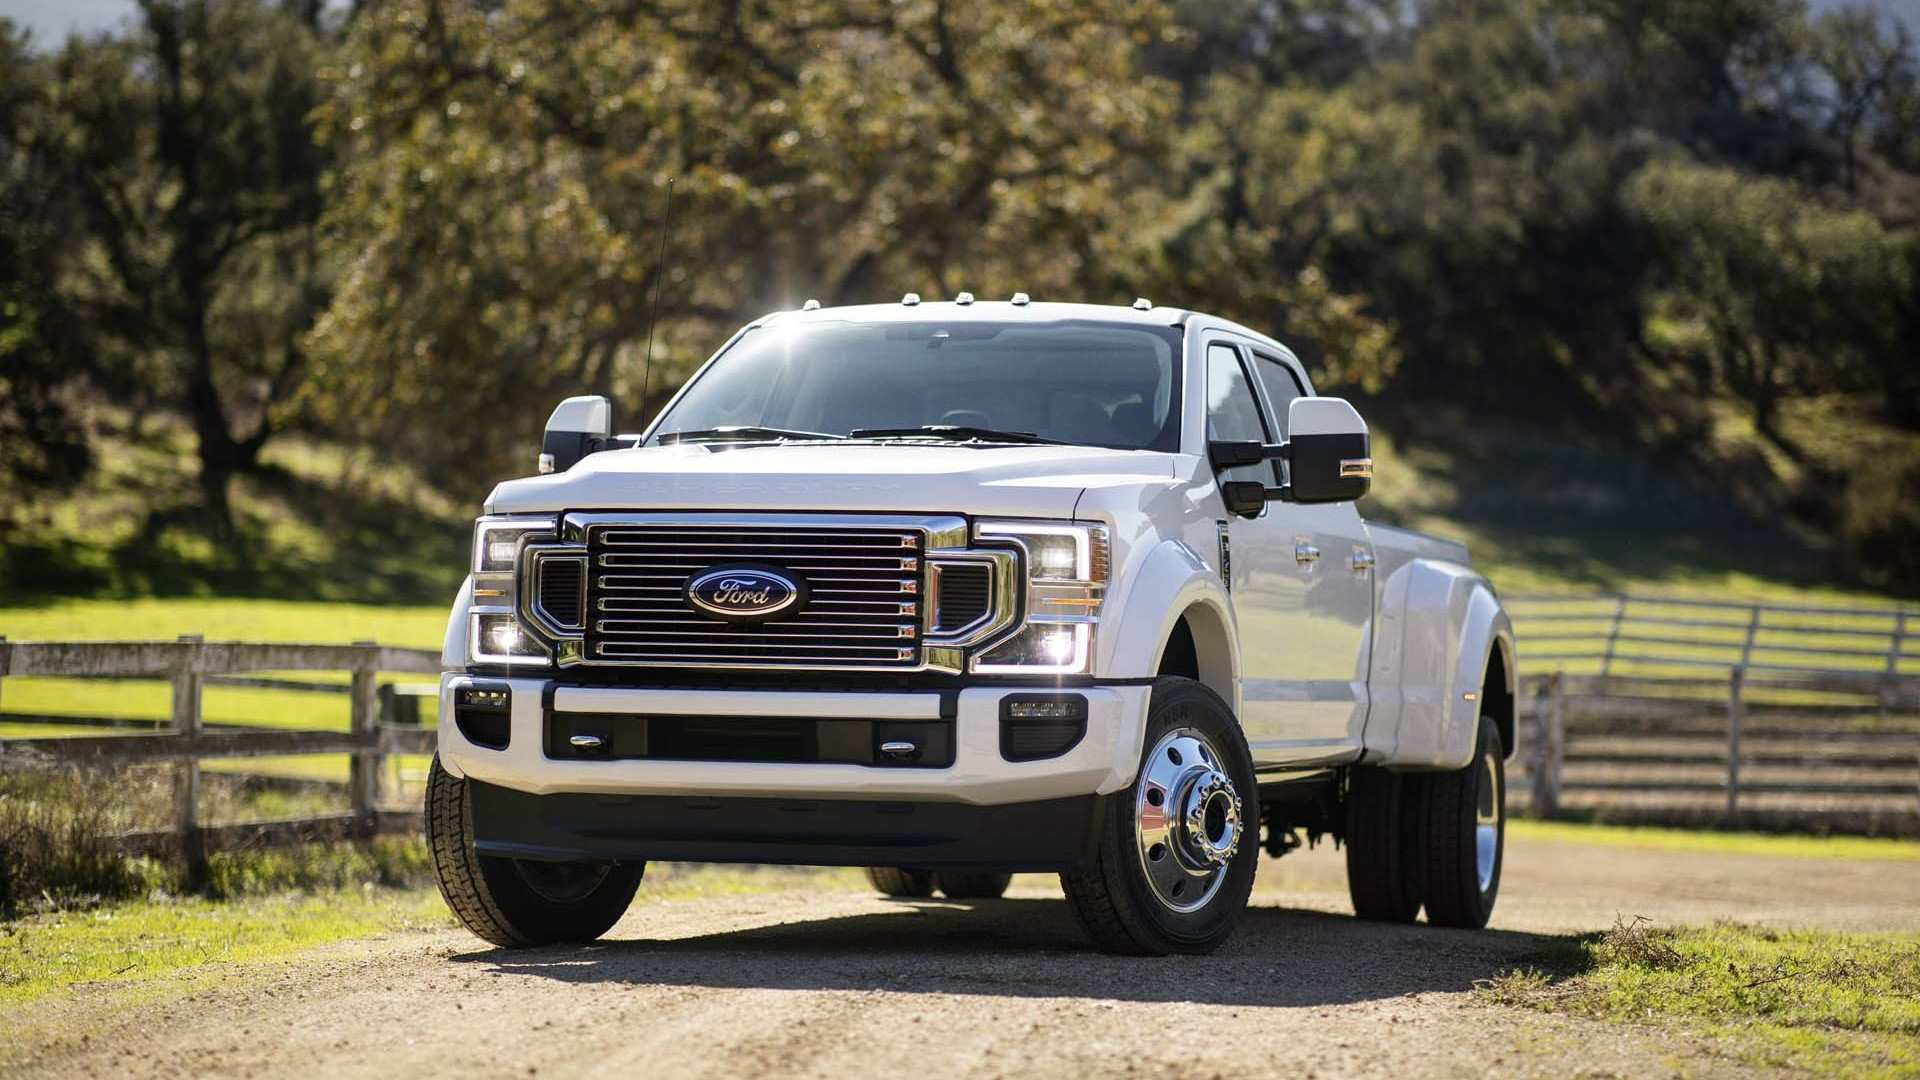 73 All New 2020 Ford F 250 First Drive